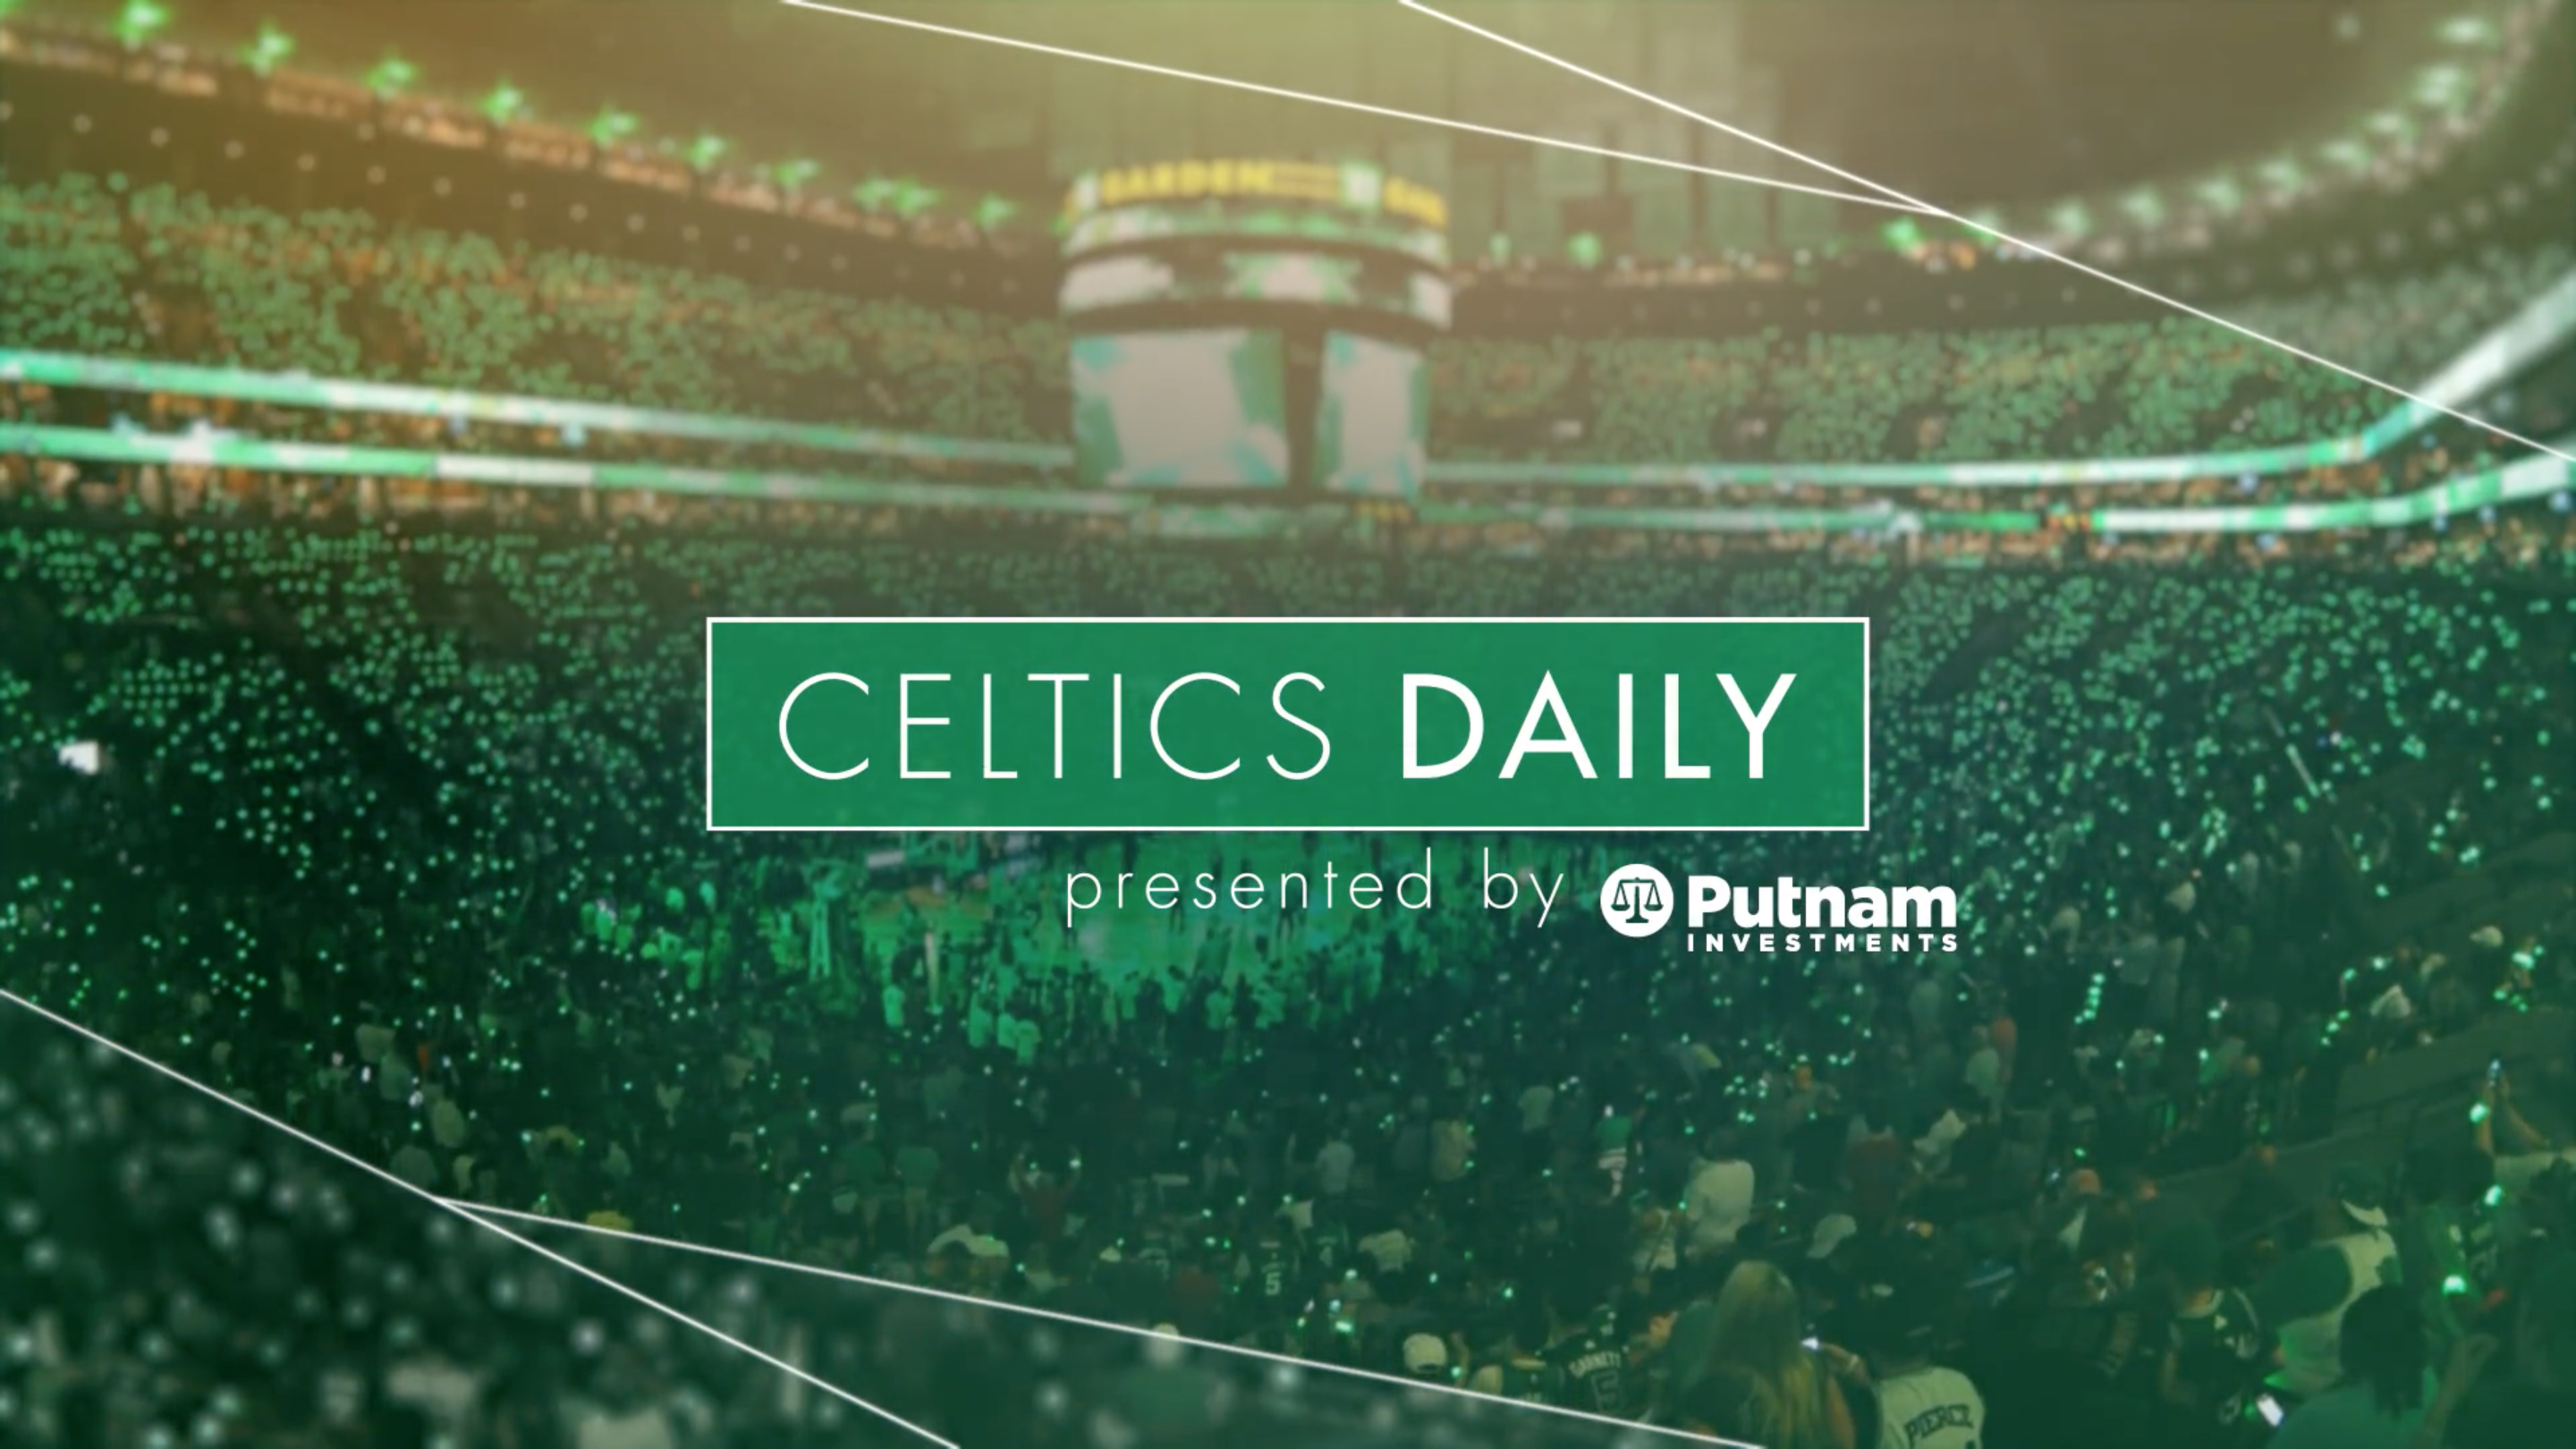 Celtics Daily Intro